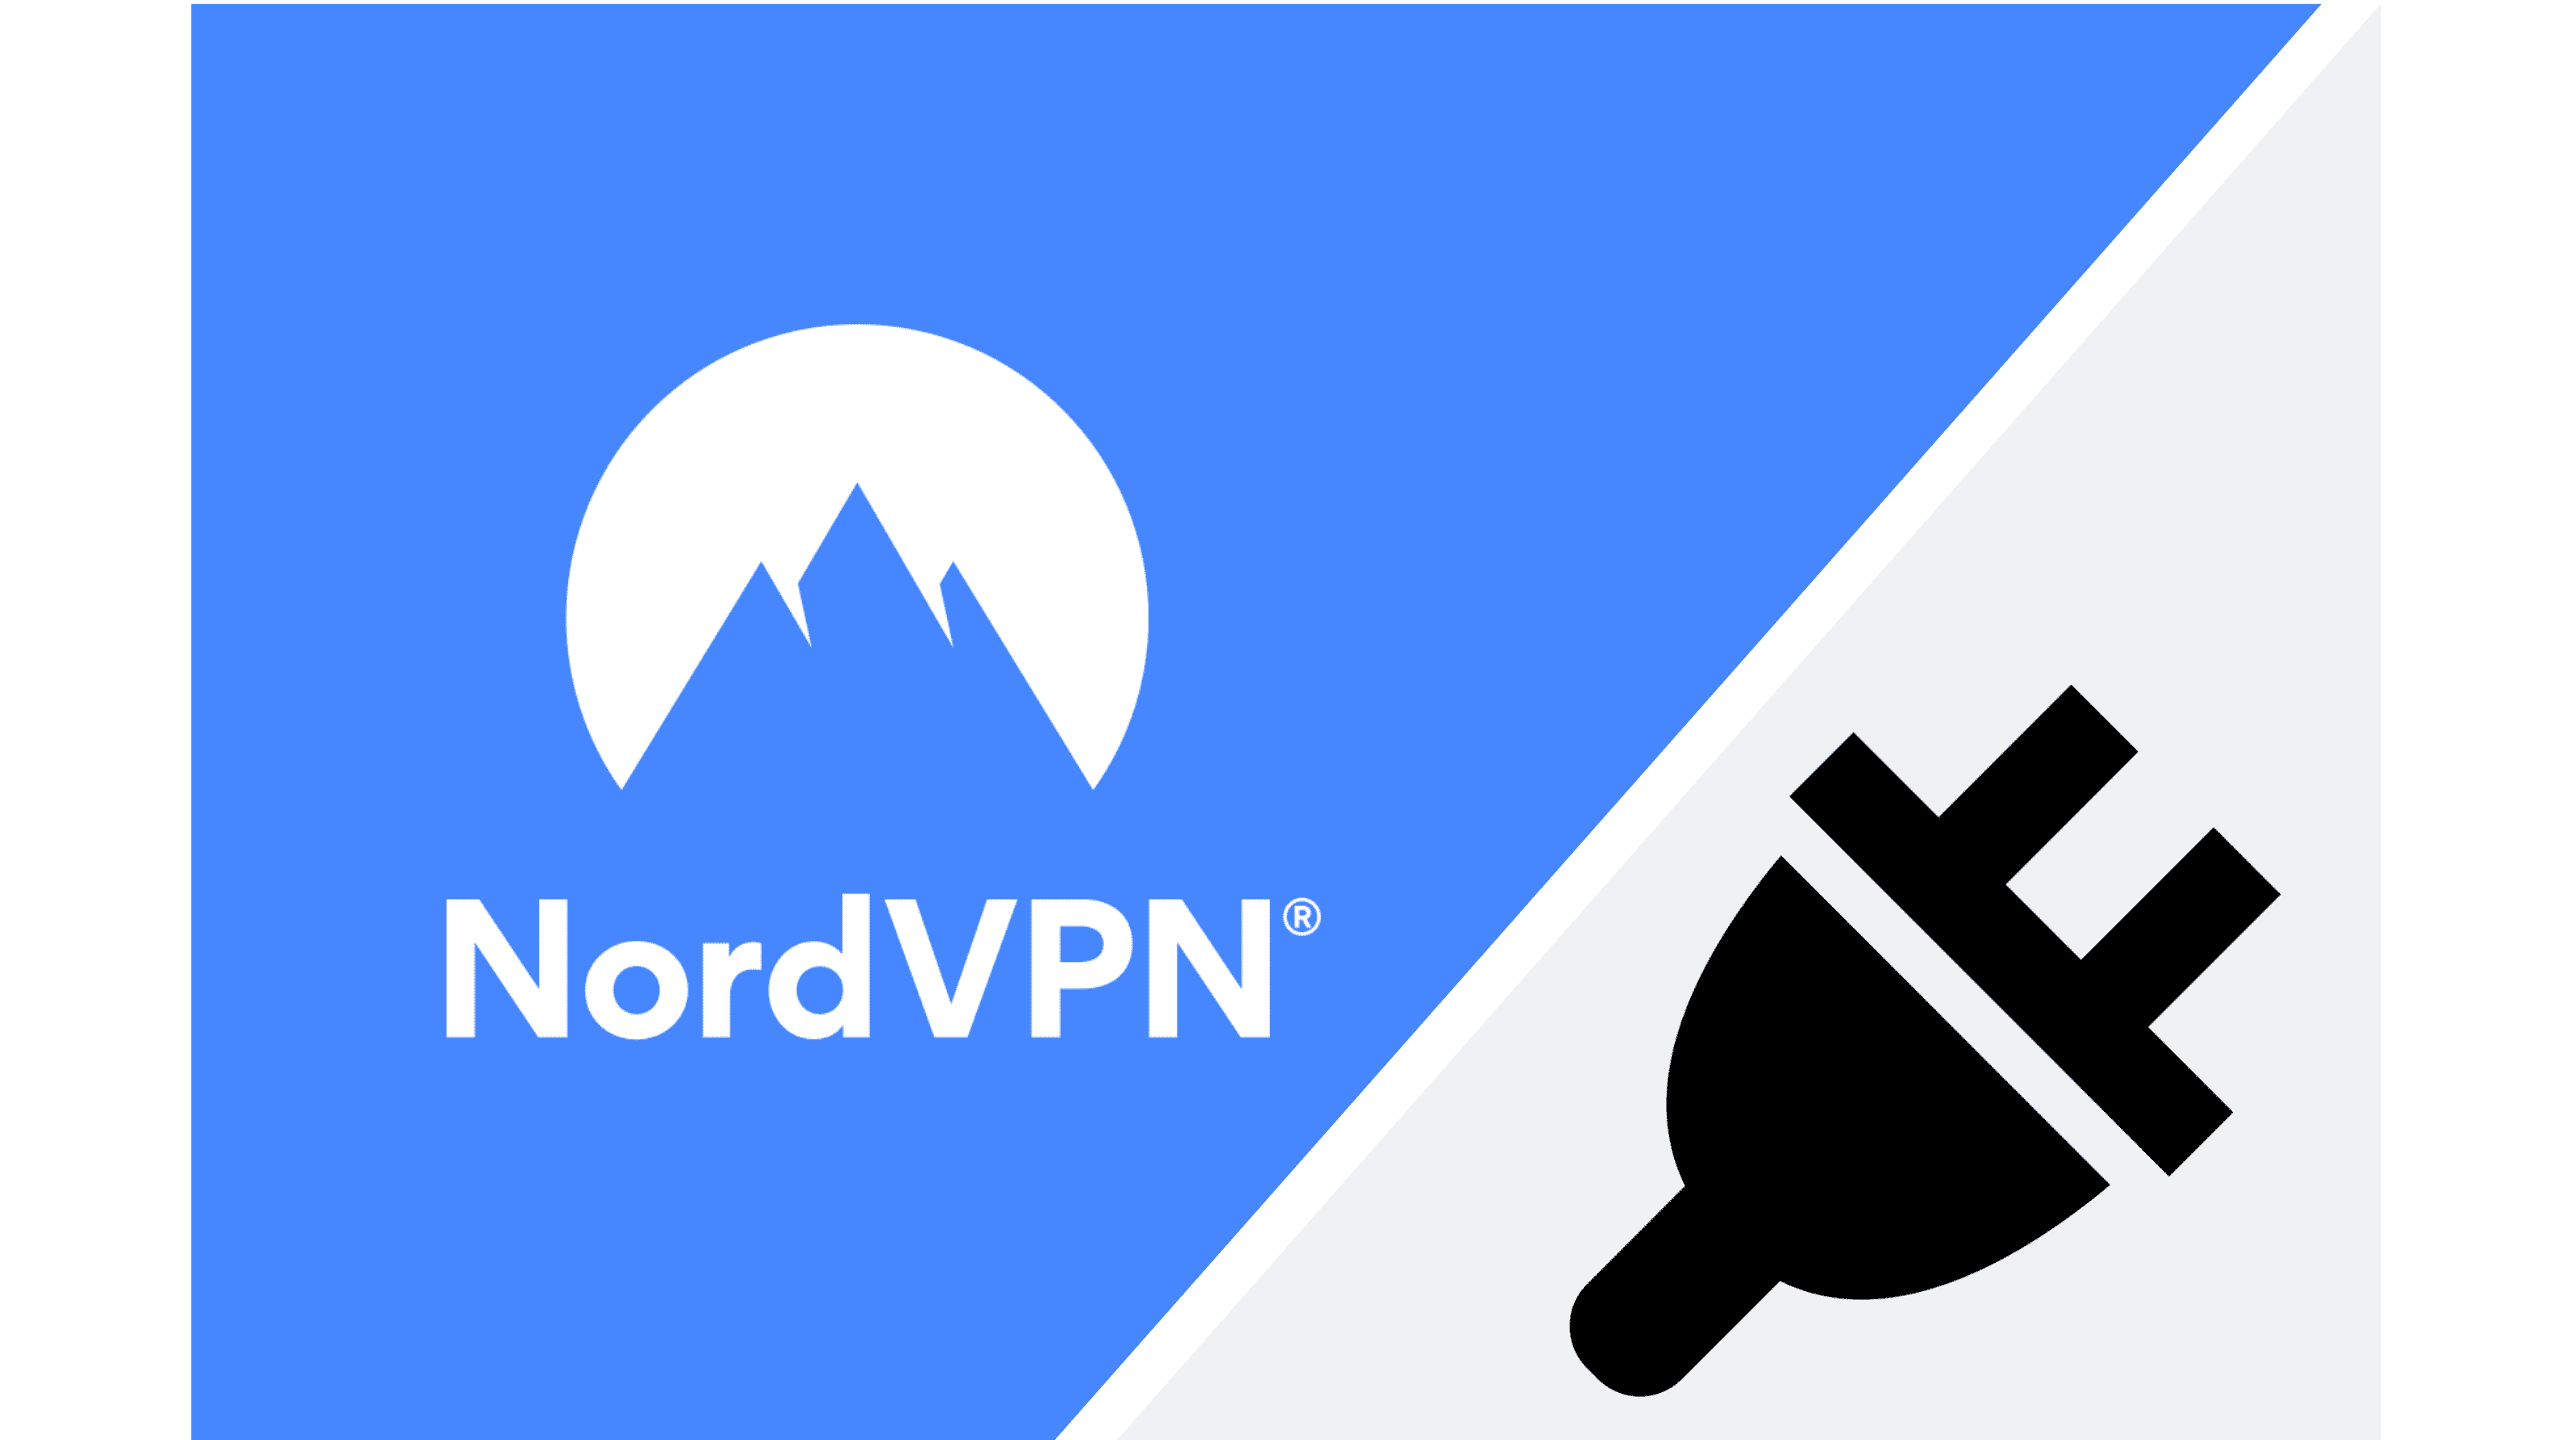 NordVPN Connector Plugin: OpenVPN für Dreambox, VU+ & Co techboys.de • smarte News, auf den Punkt!